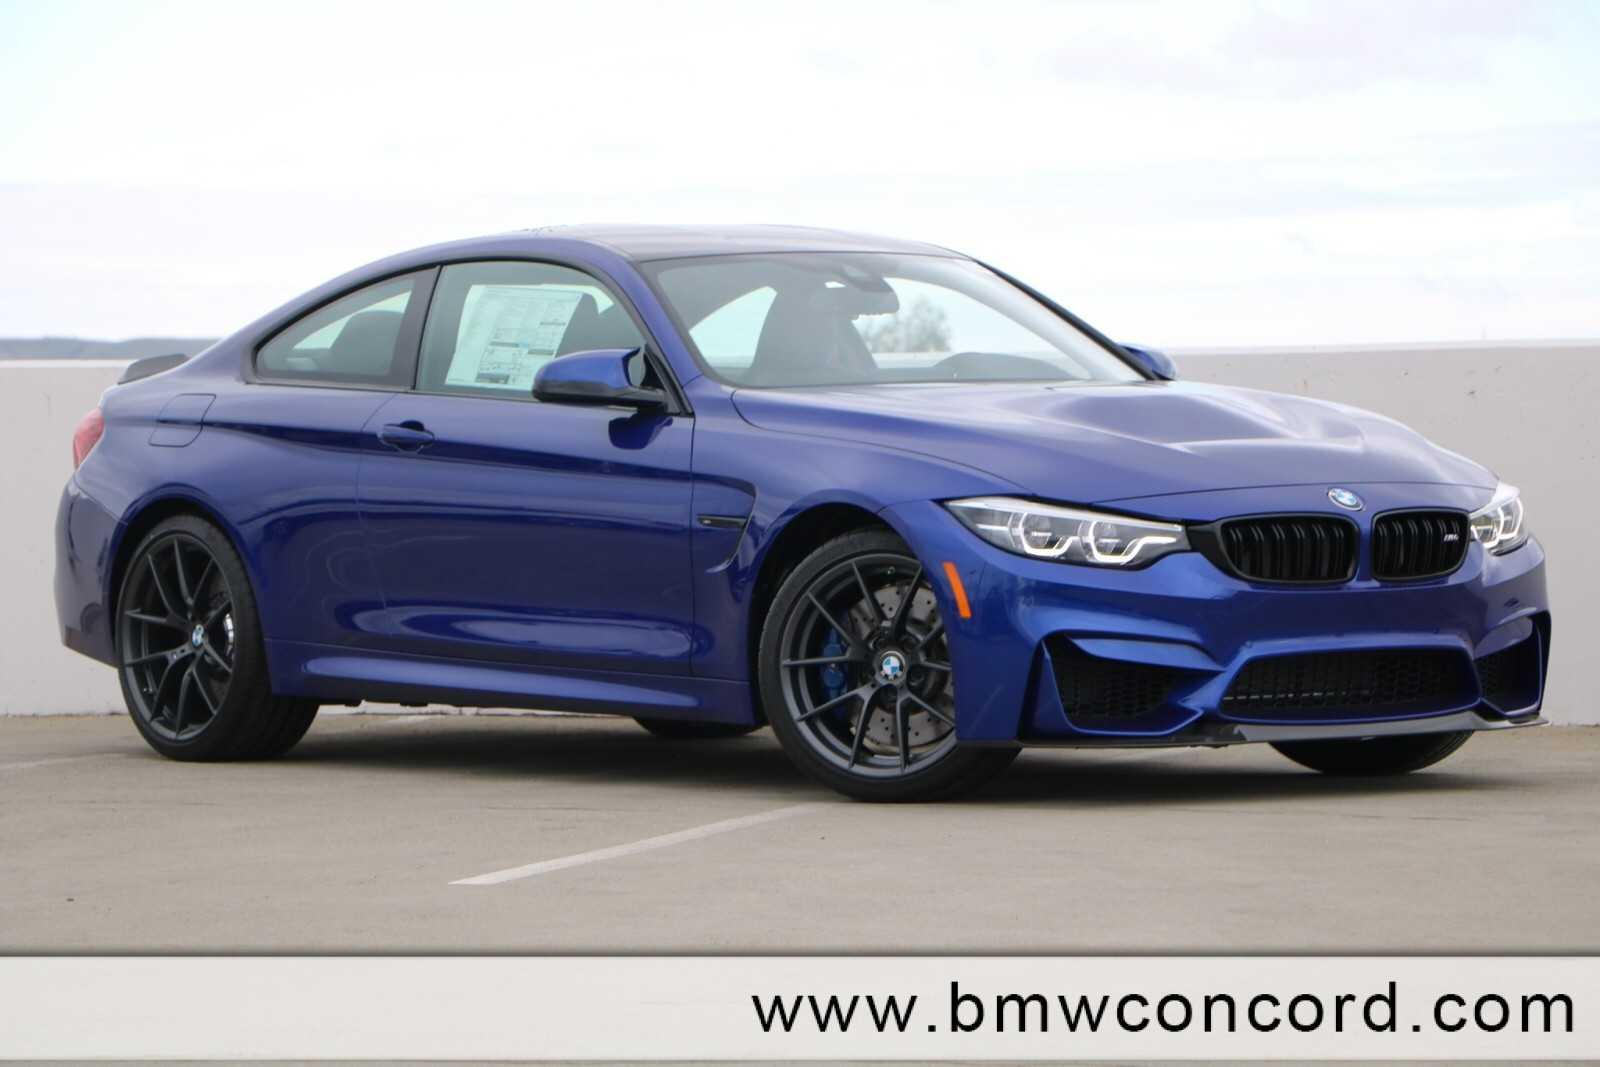 New 2019 Bmw M4 Cs Coupe 2dr Car In Concord 190273 Bmw Concord